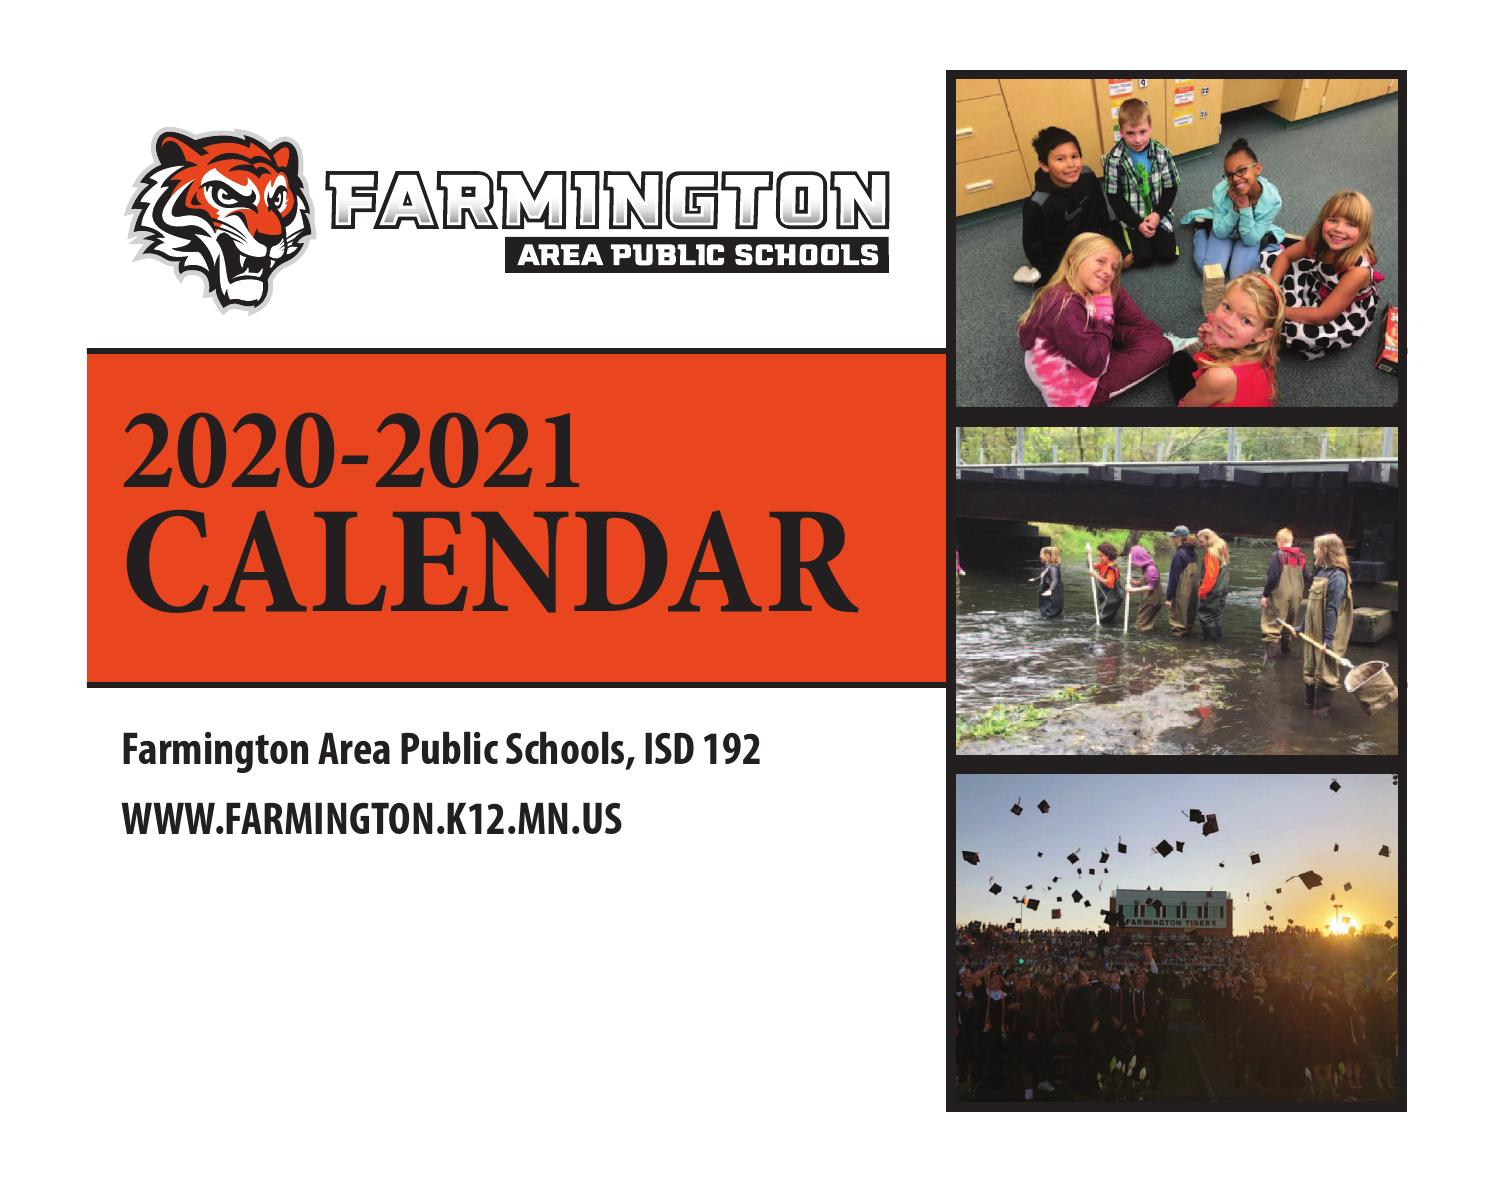 Farmington Ct School Calendar 2021-2022 Farmington Area Public Schools 2020 2021 Calendar by Sally